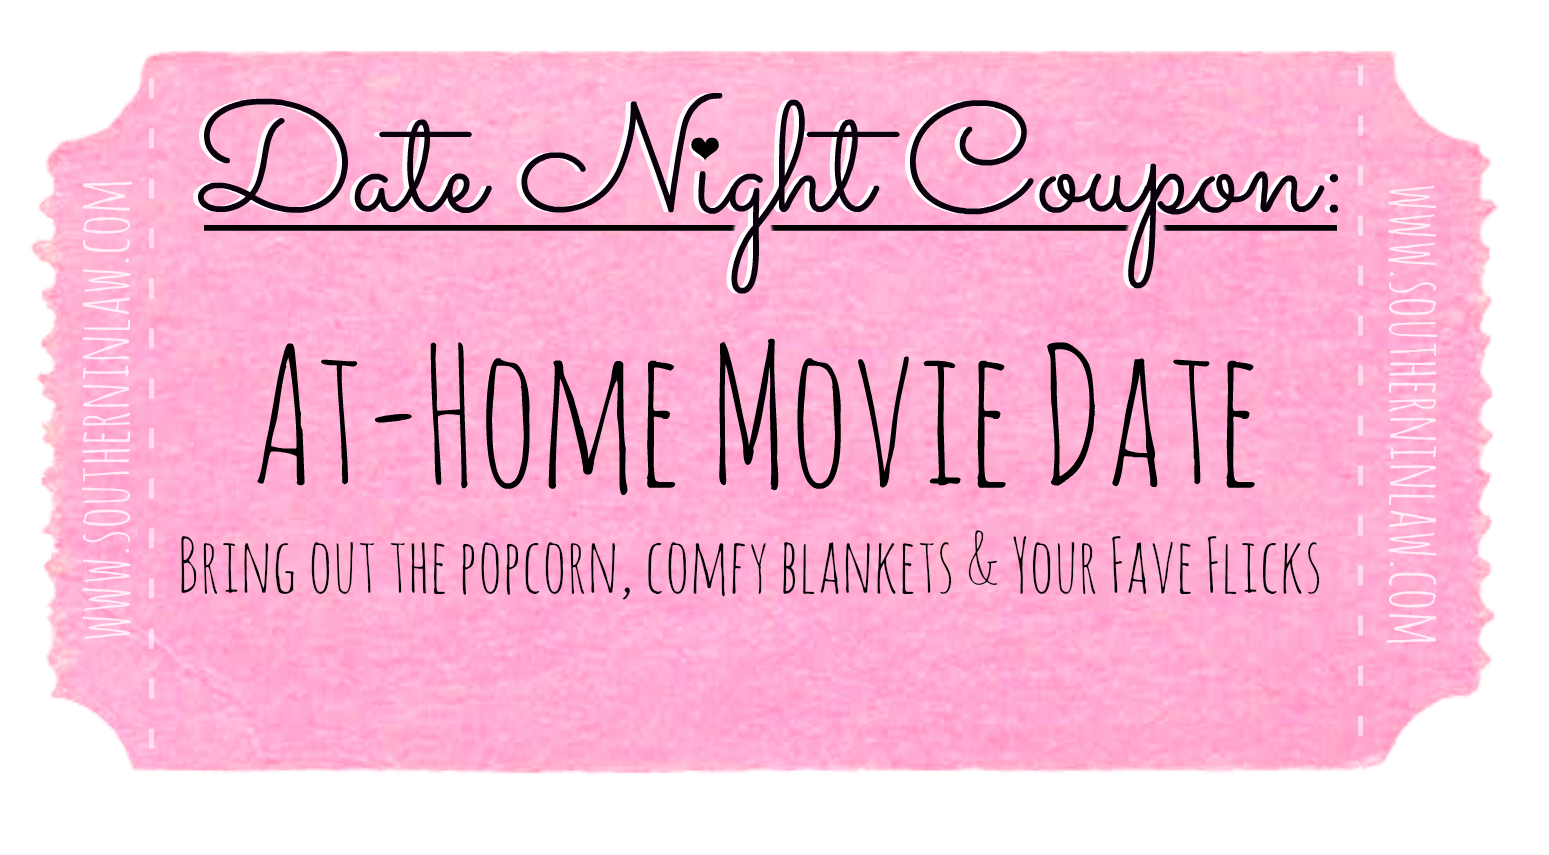 Affordable Date Ideas - Cheap Date Ideas Coupons - Have a movie day at home